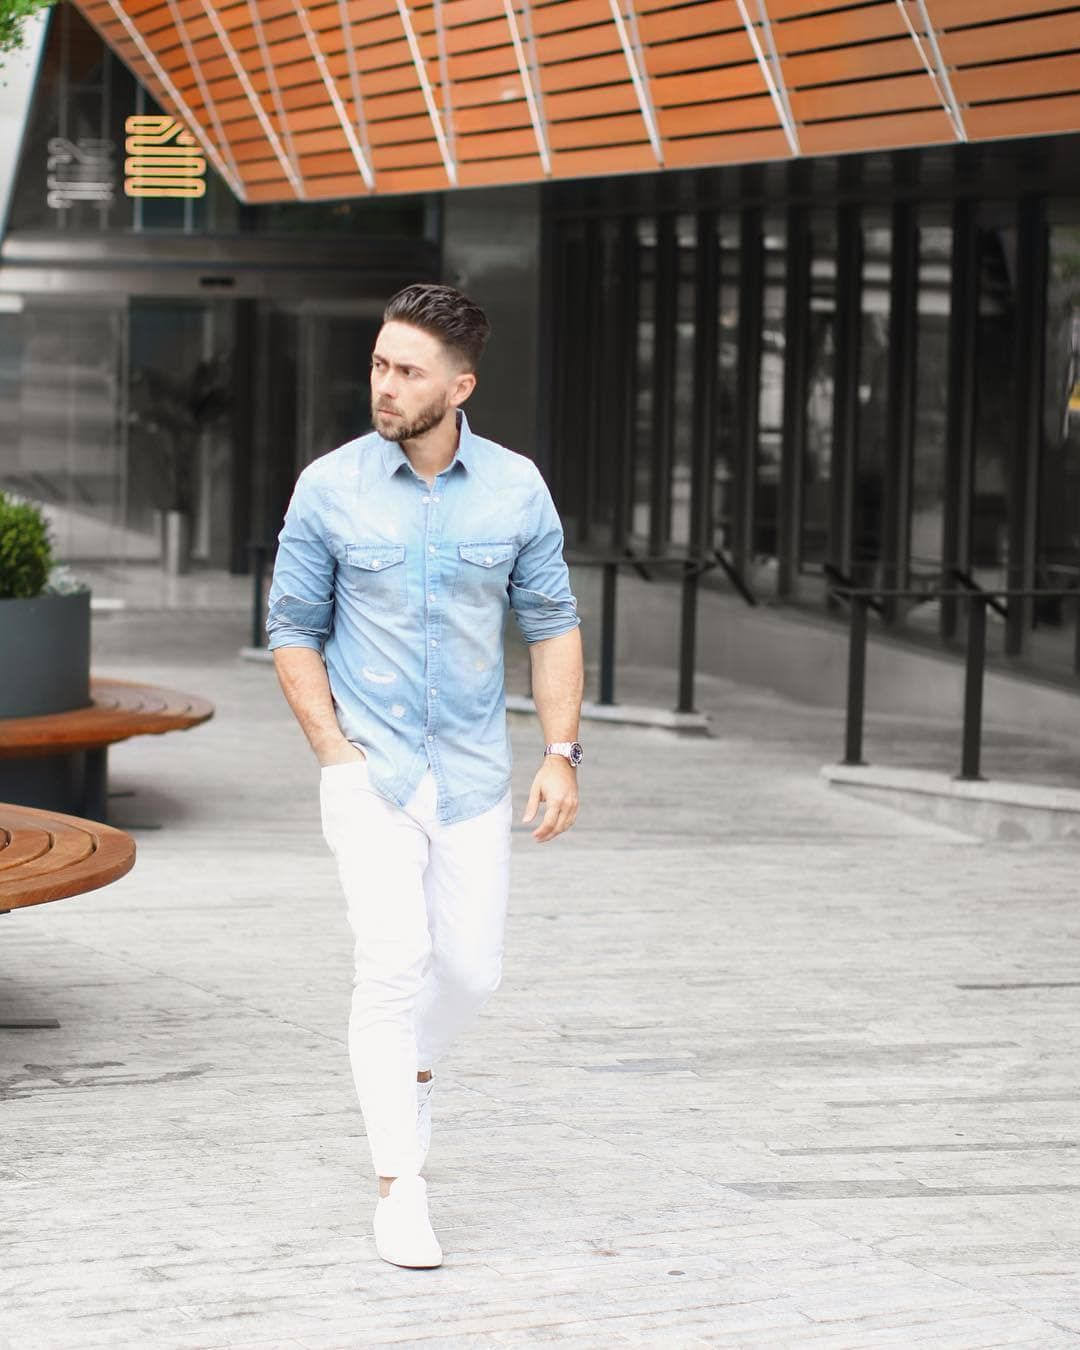 White jeans outfit mens